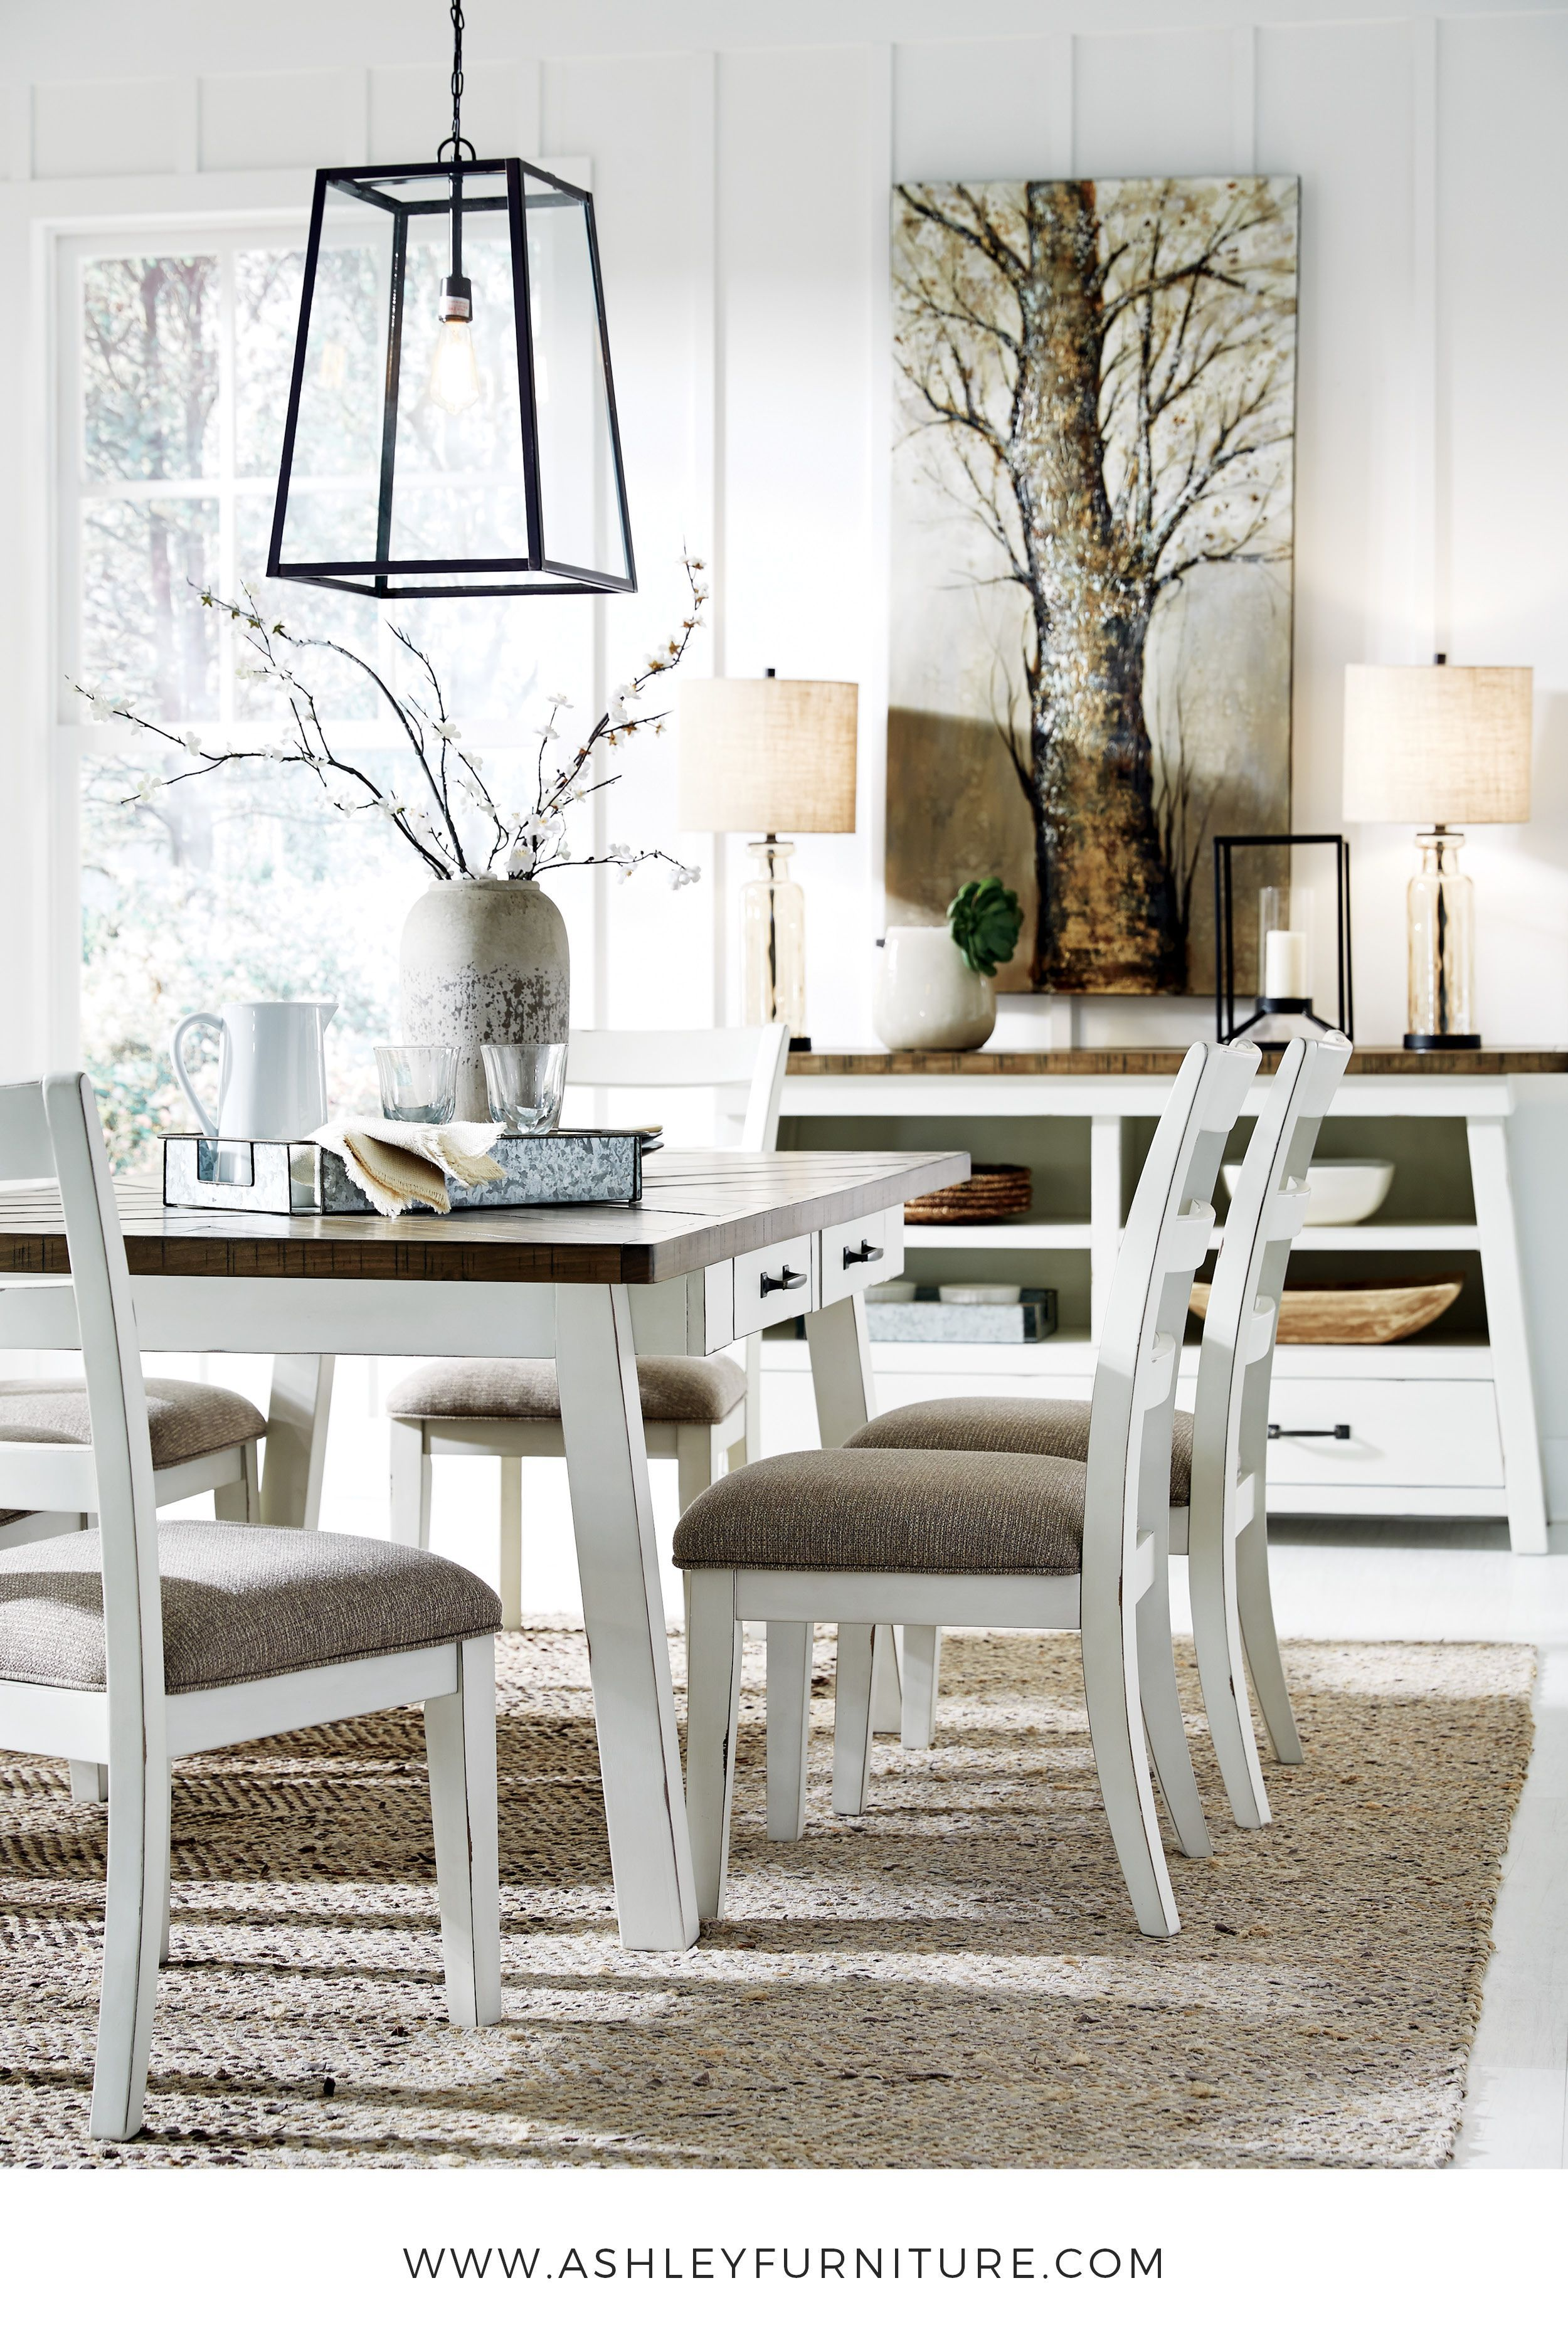 Ashley Furniture Dinning Set Indulge In Modern Farmhouse Style At